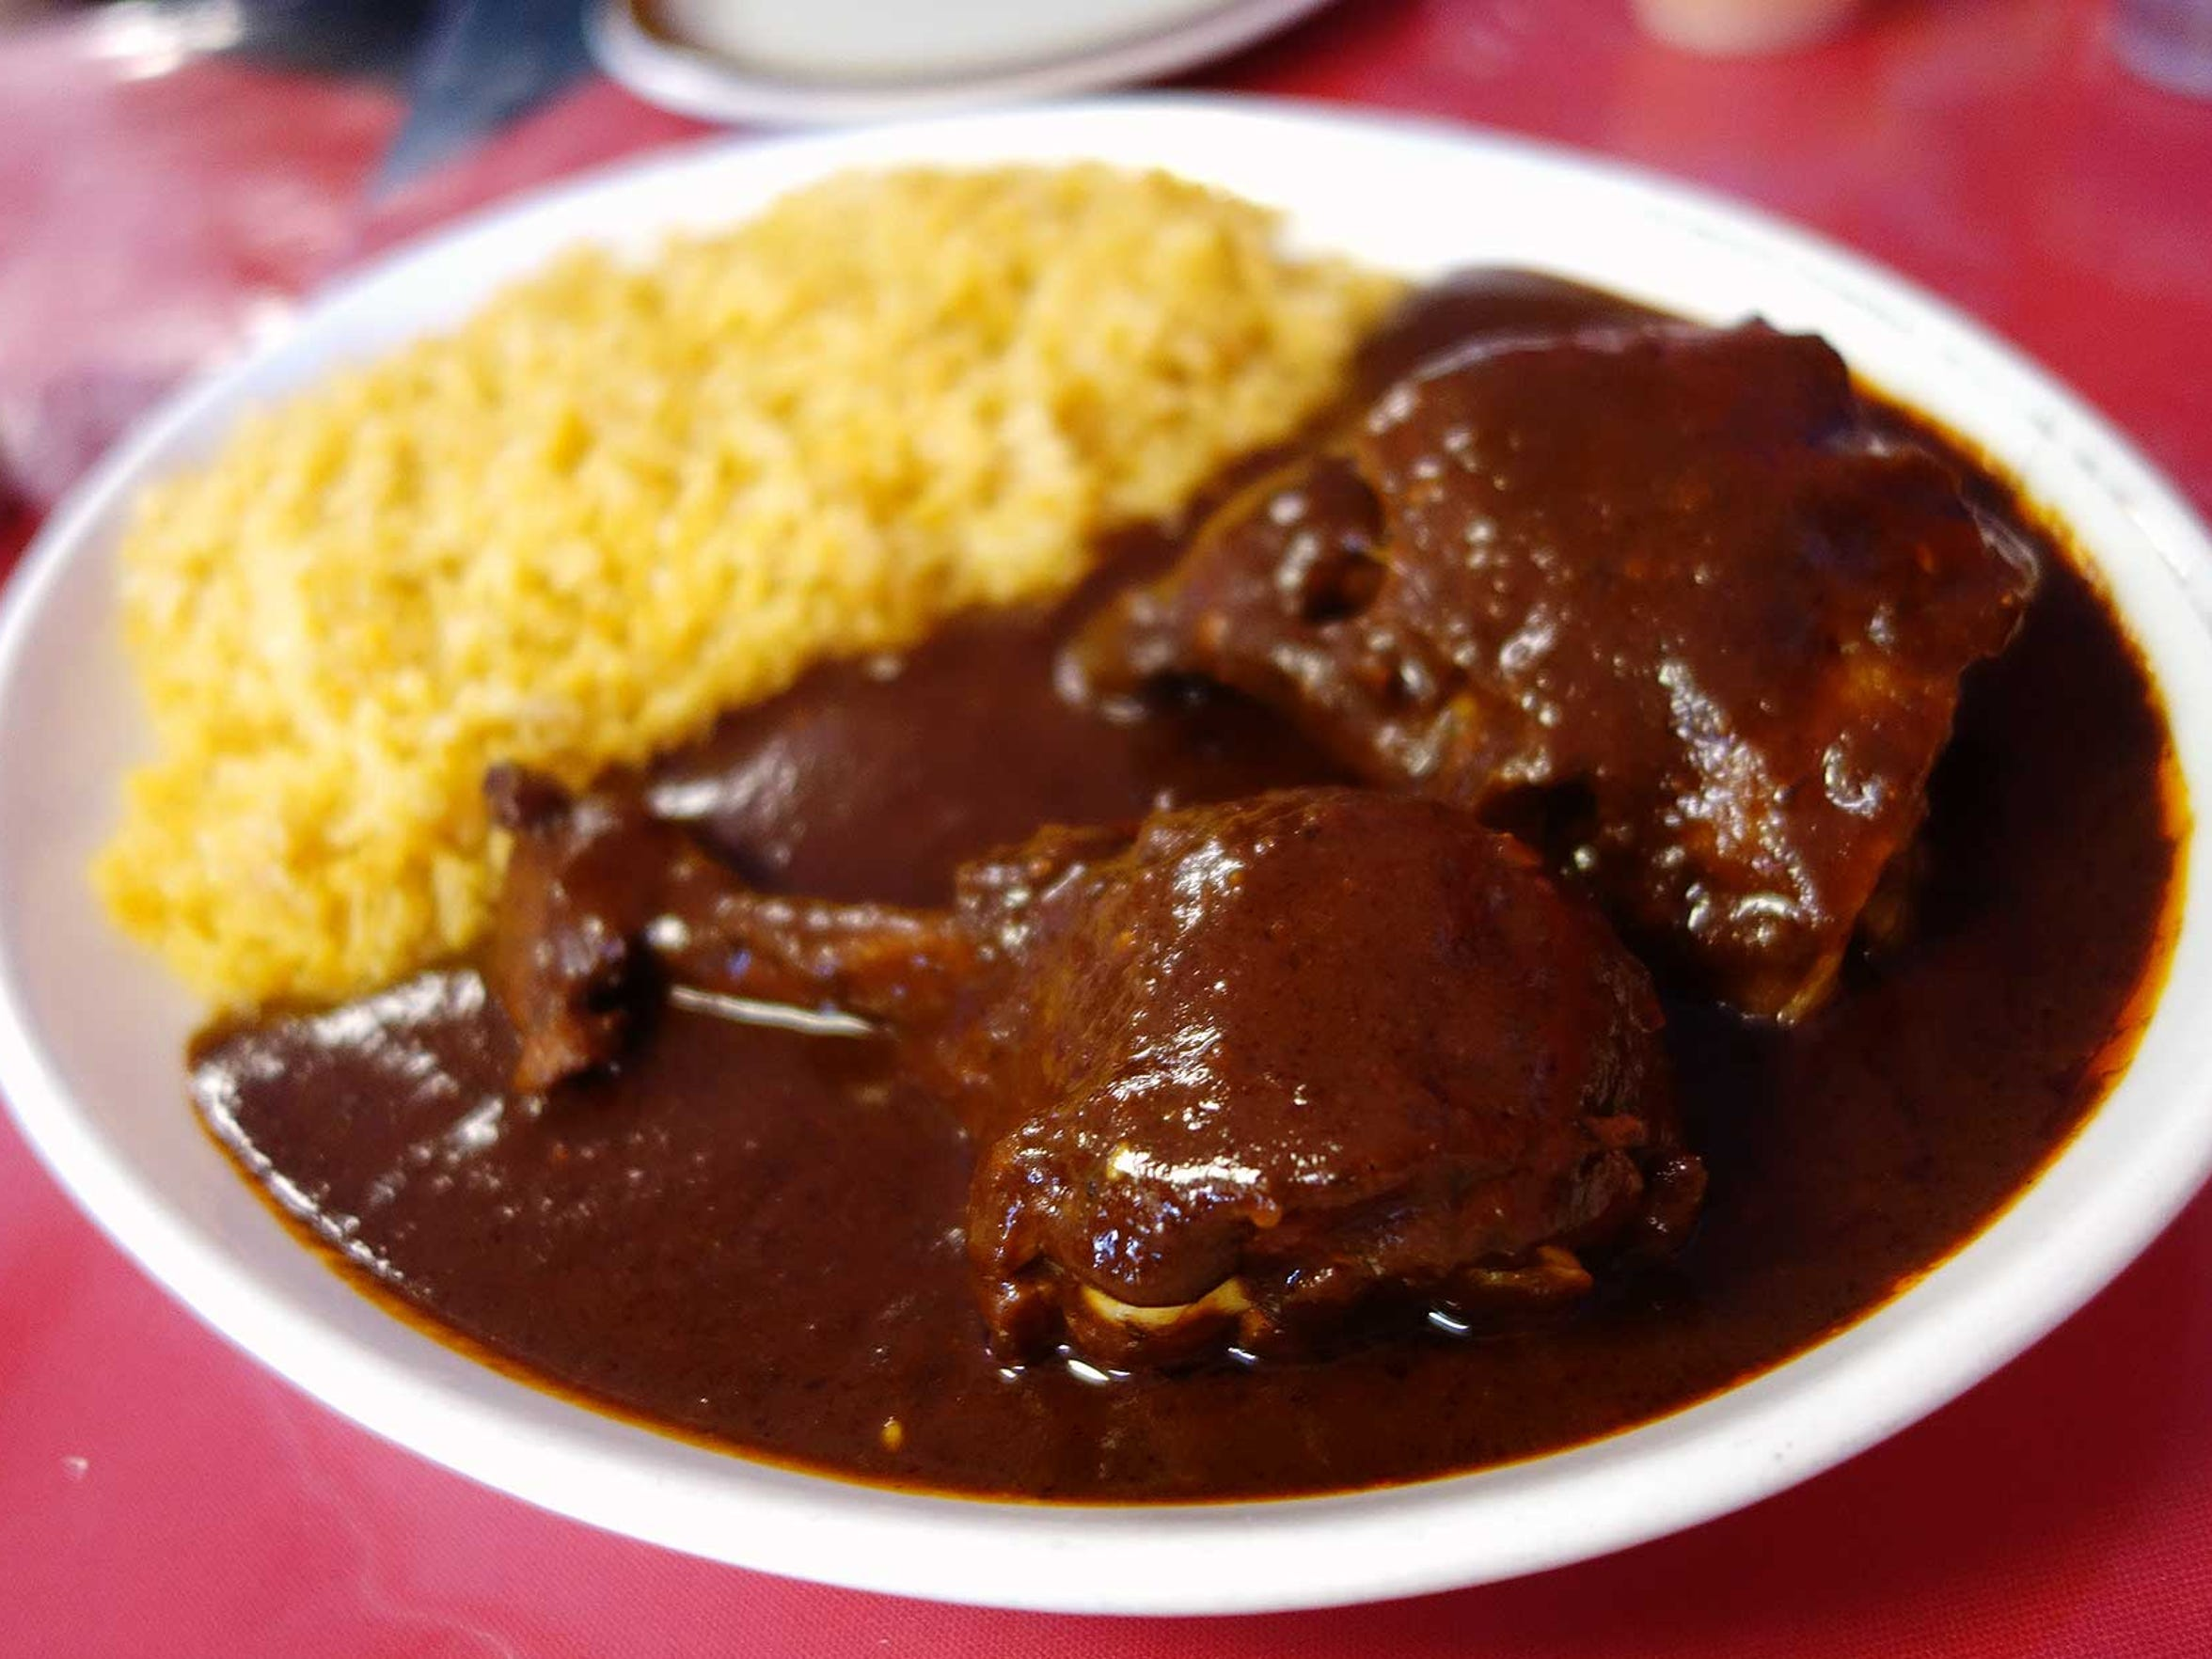 Chicken with mole poblano and rice at Restaurant Huauchinangos.